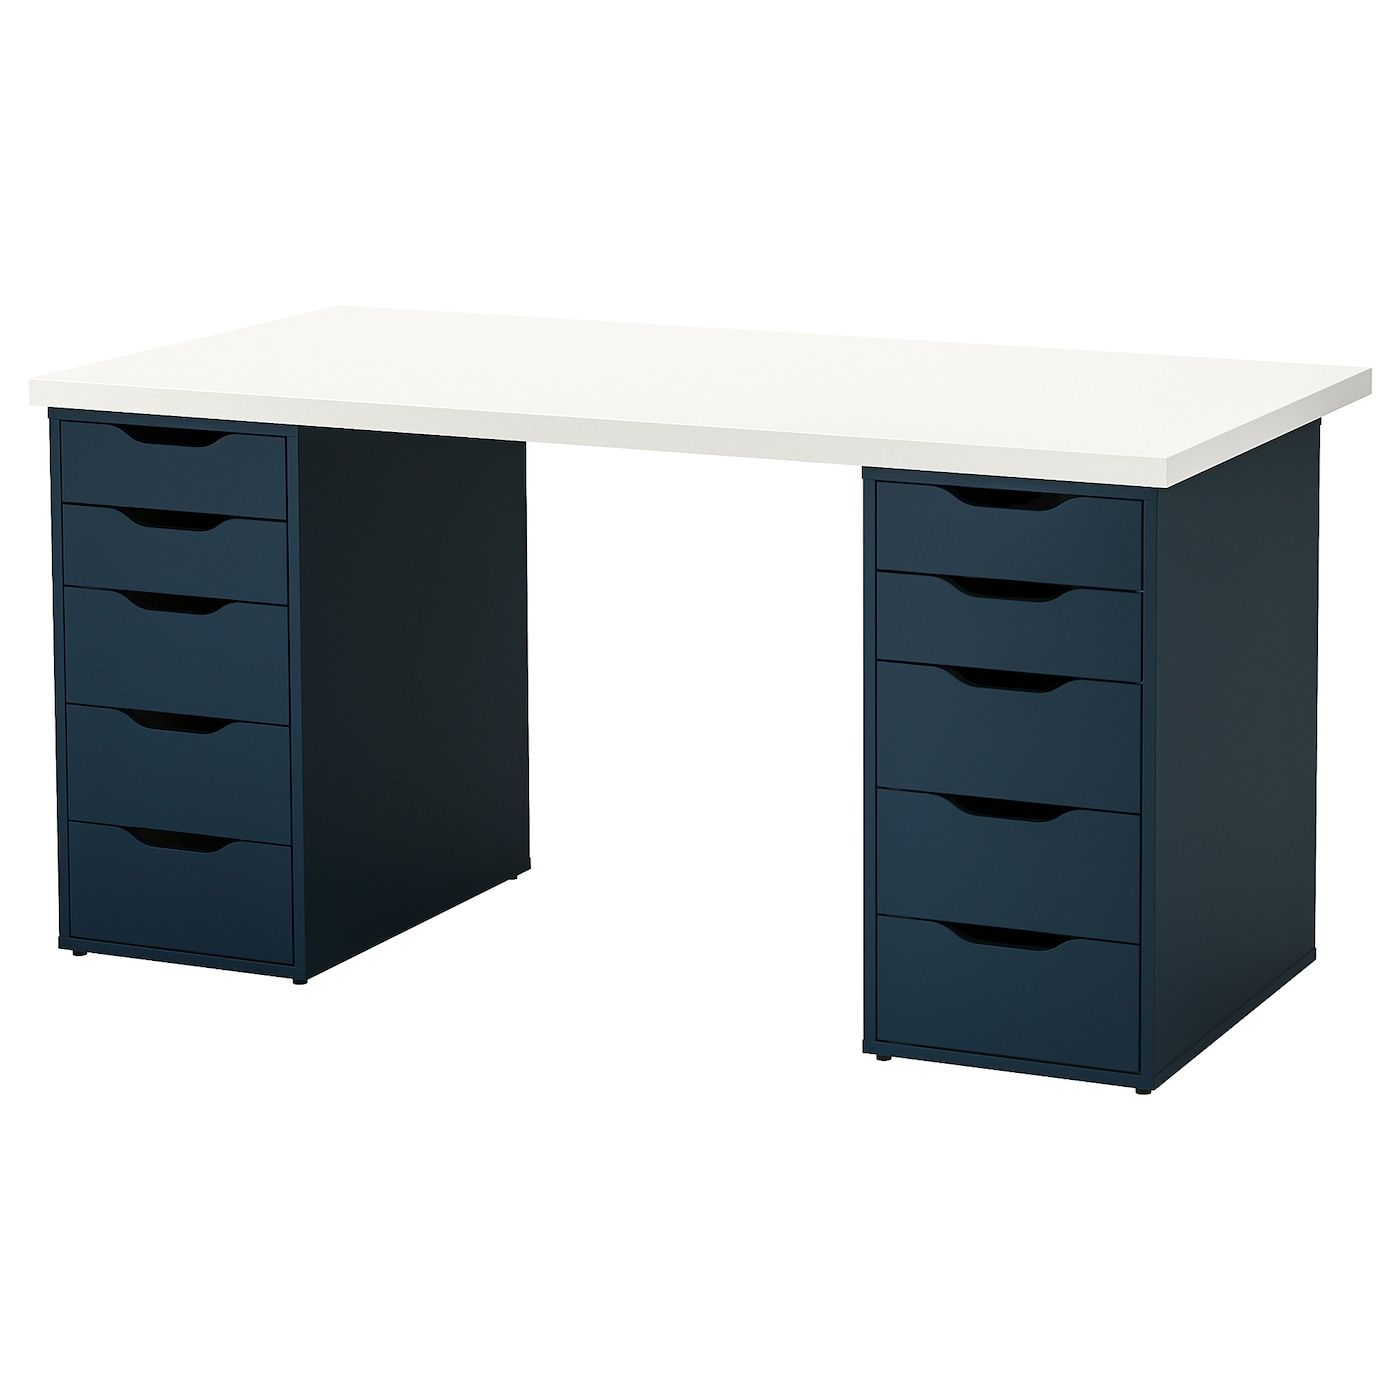 Linnmon Alex White Blue Table 150x75 Cm Height 73 Cm Ikea In 2020 Drawer Unit Ikea Office Table